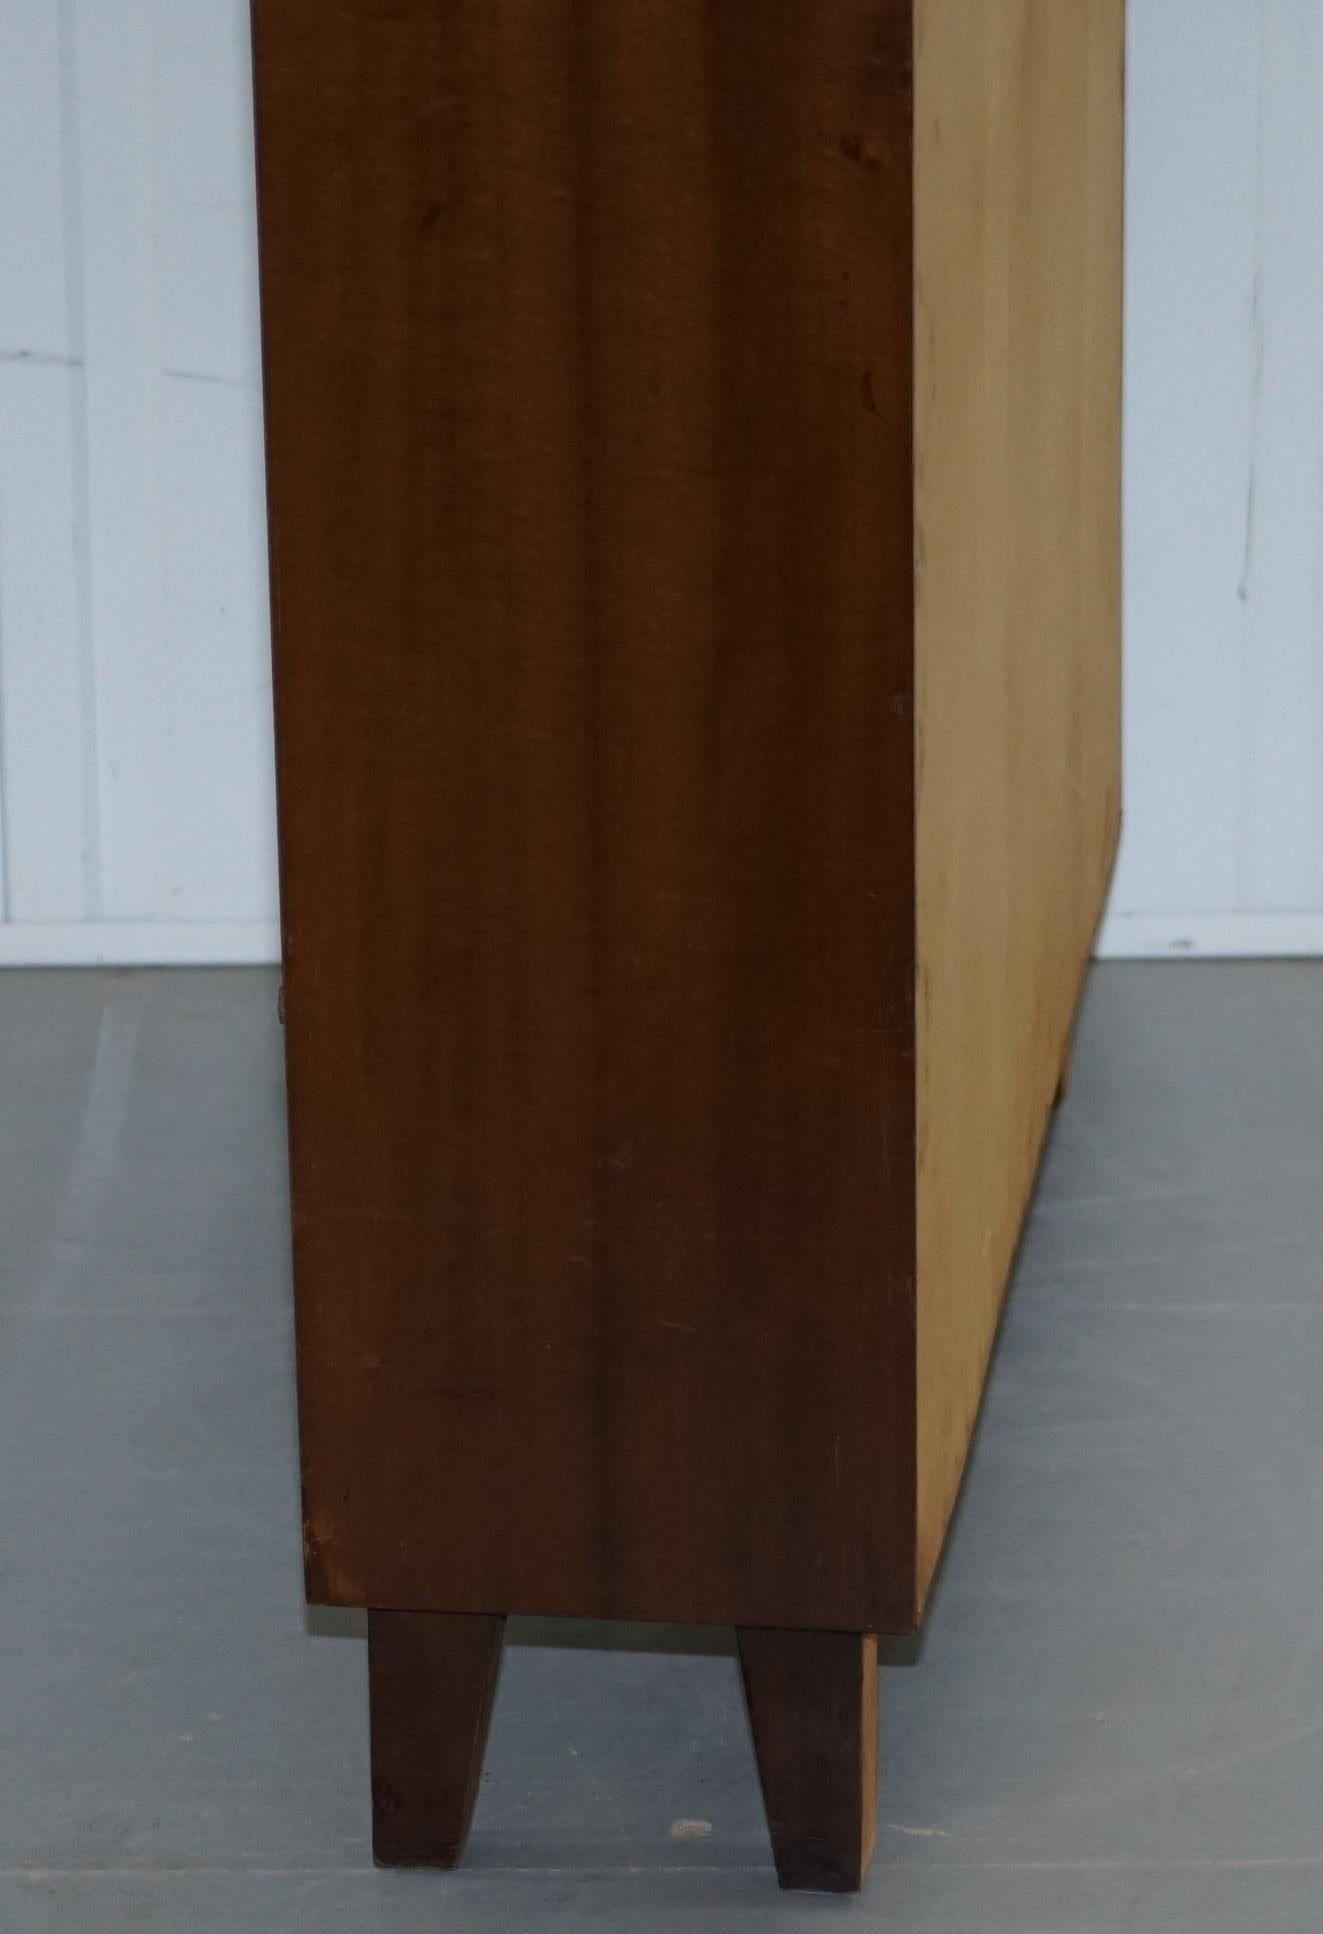 Vintage Mid Century Modern Stamped Musterring Oberfl Behandlung Bookcase For Sale At 1stdibs